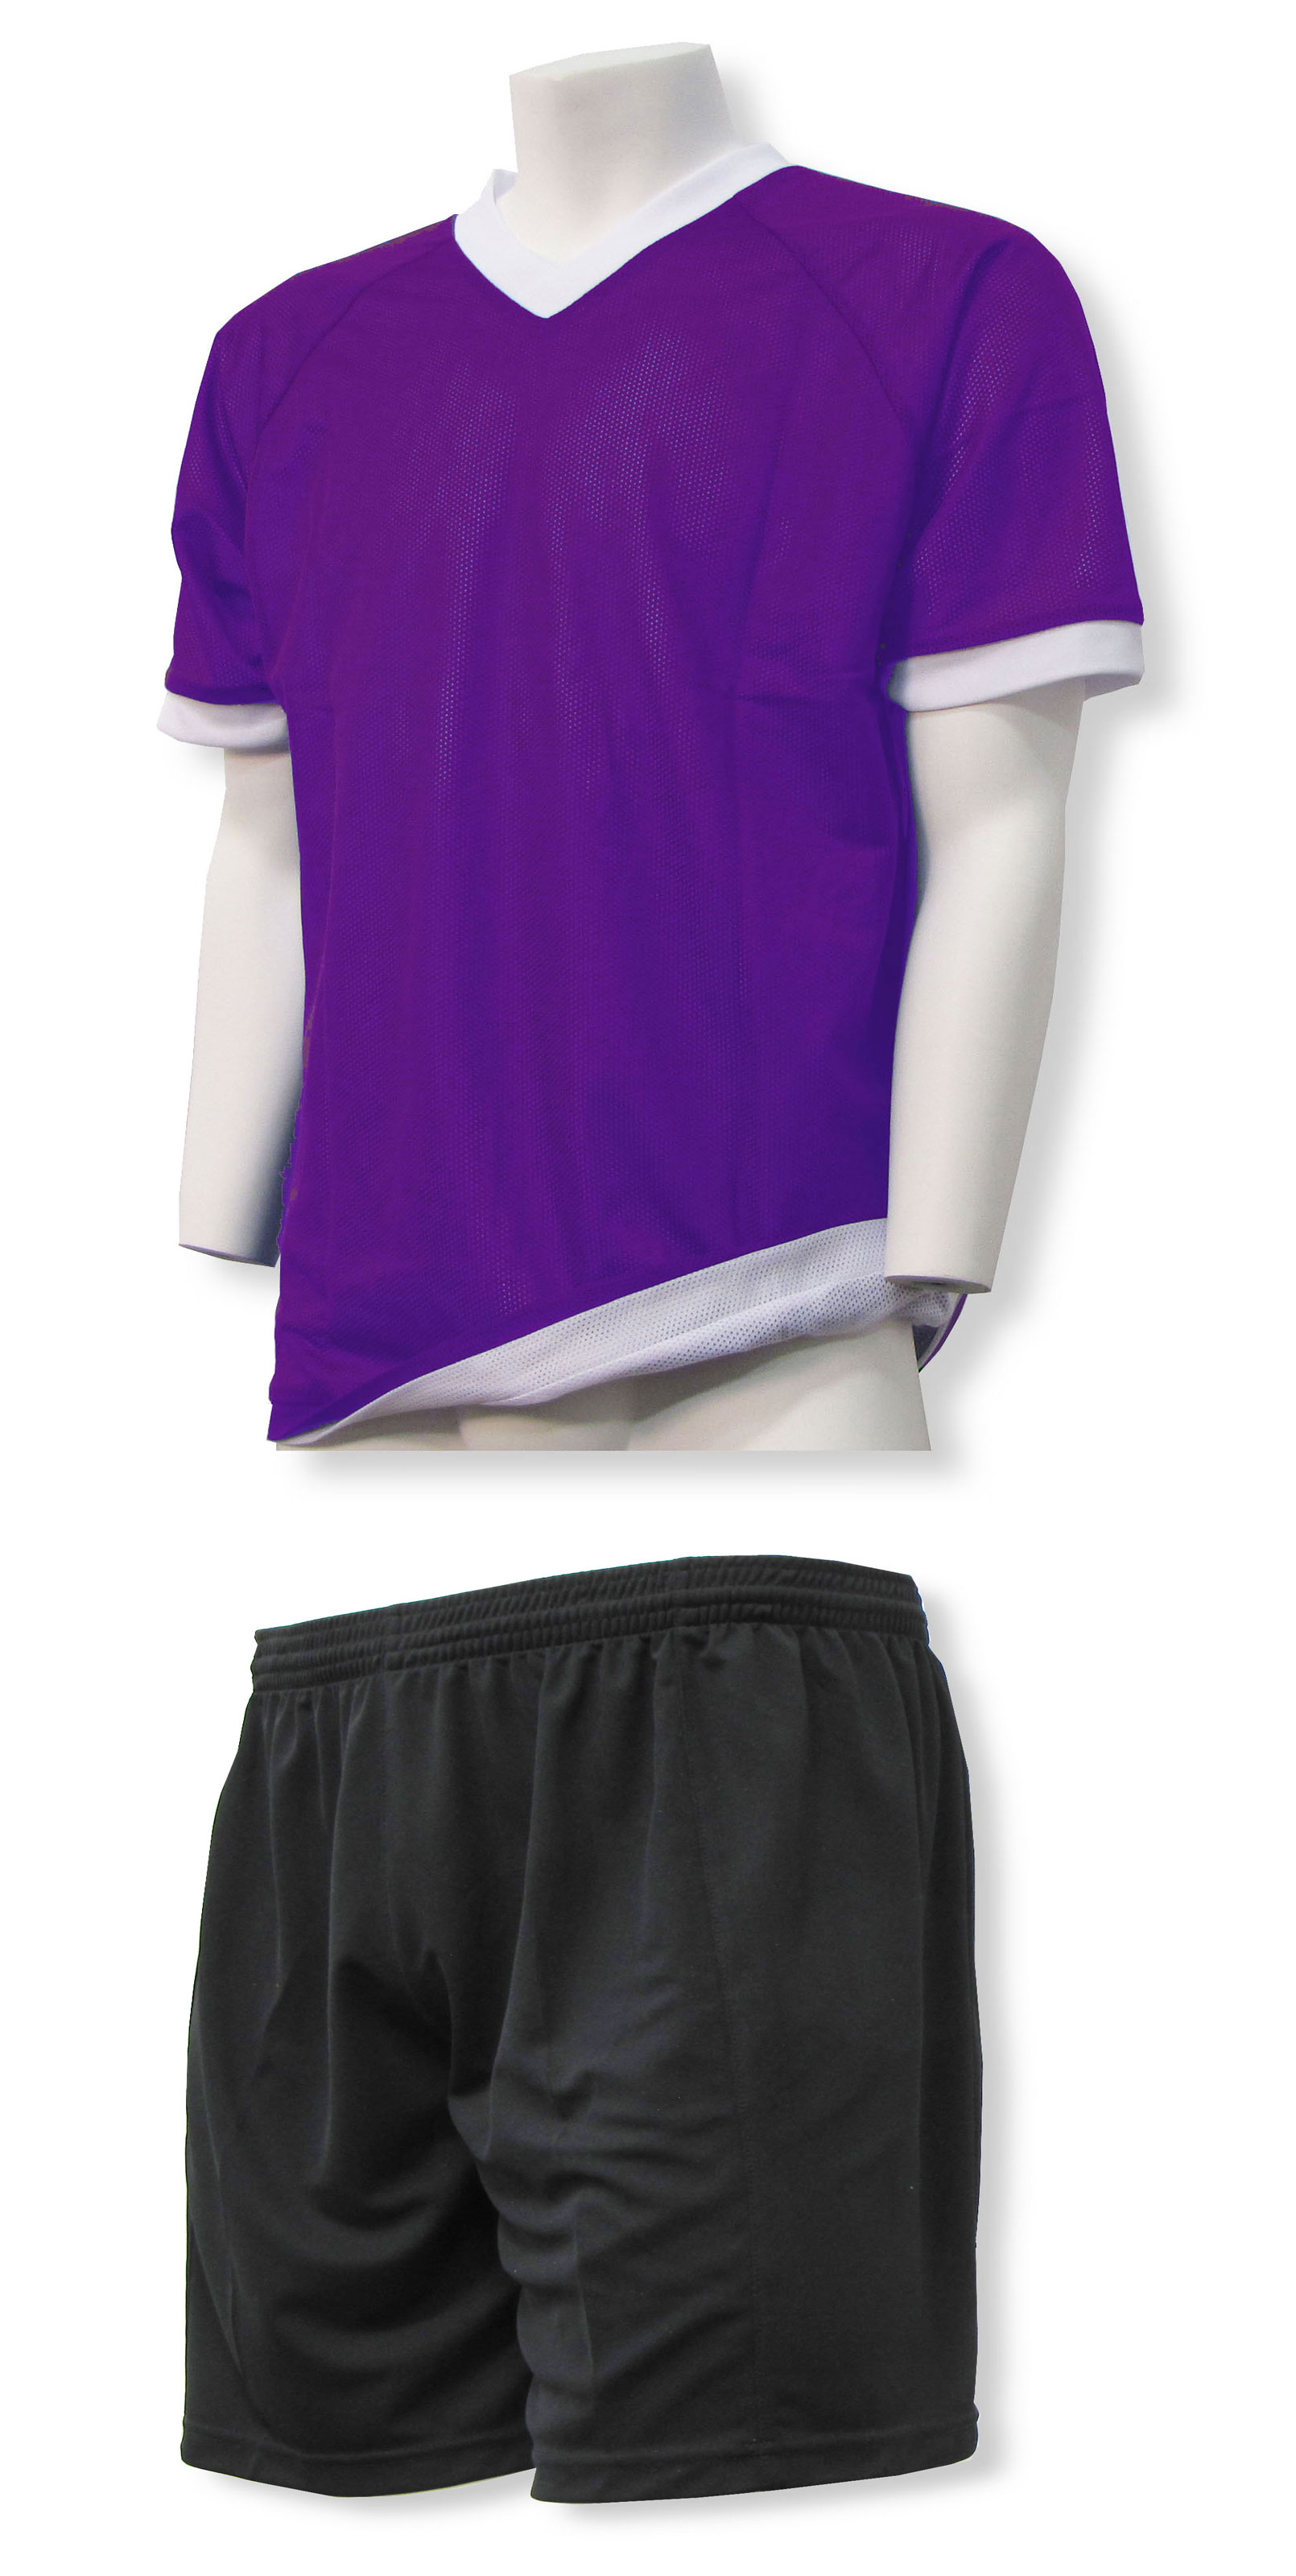 Reversible sports uniform jersey in purple/white with black shorts by Code Four Athletics